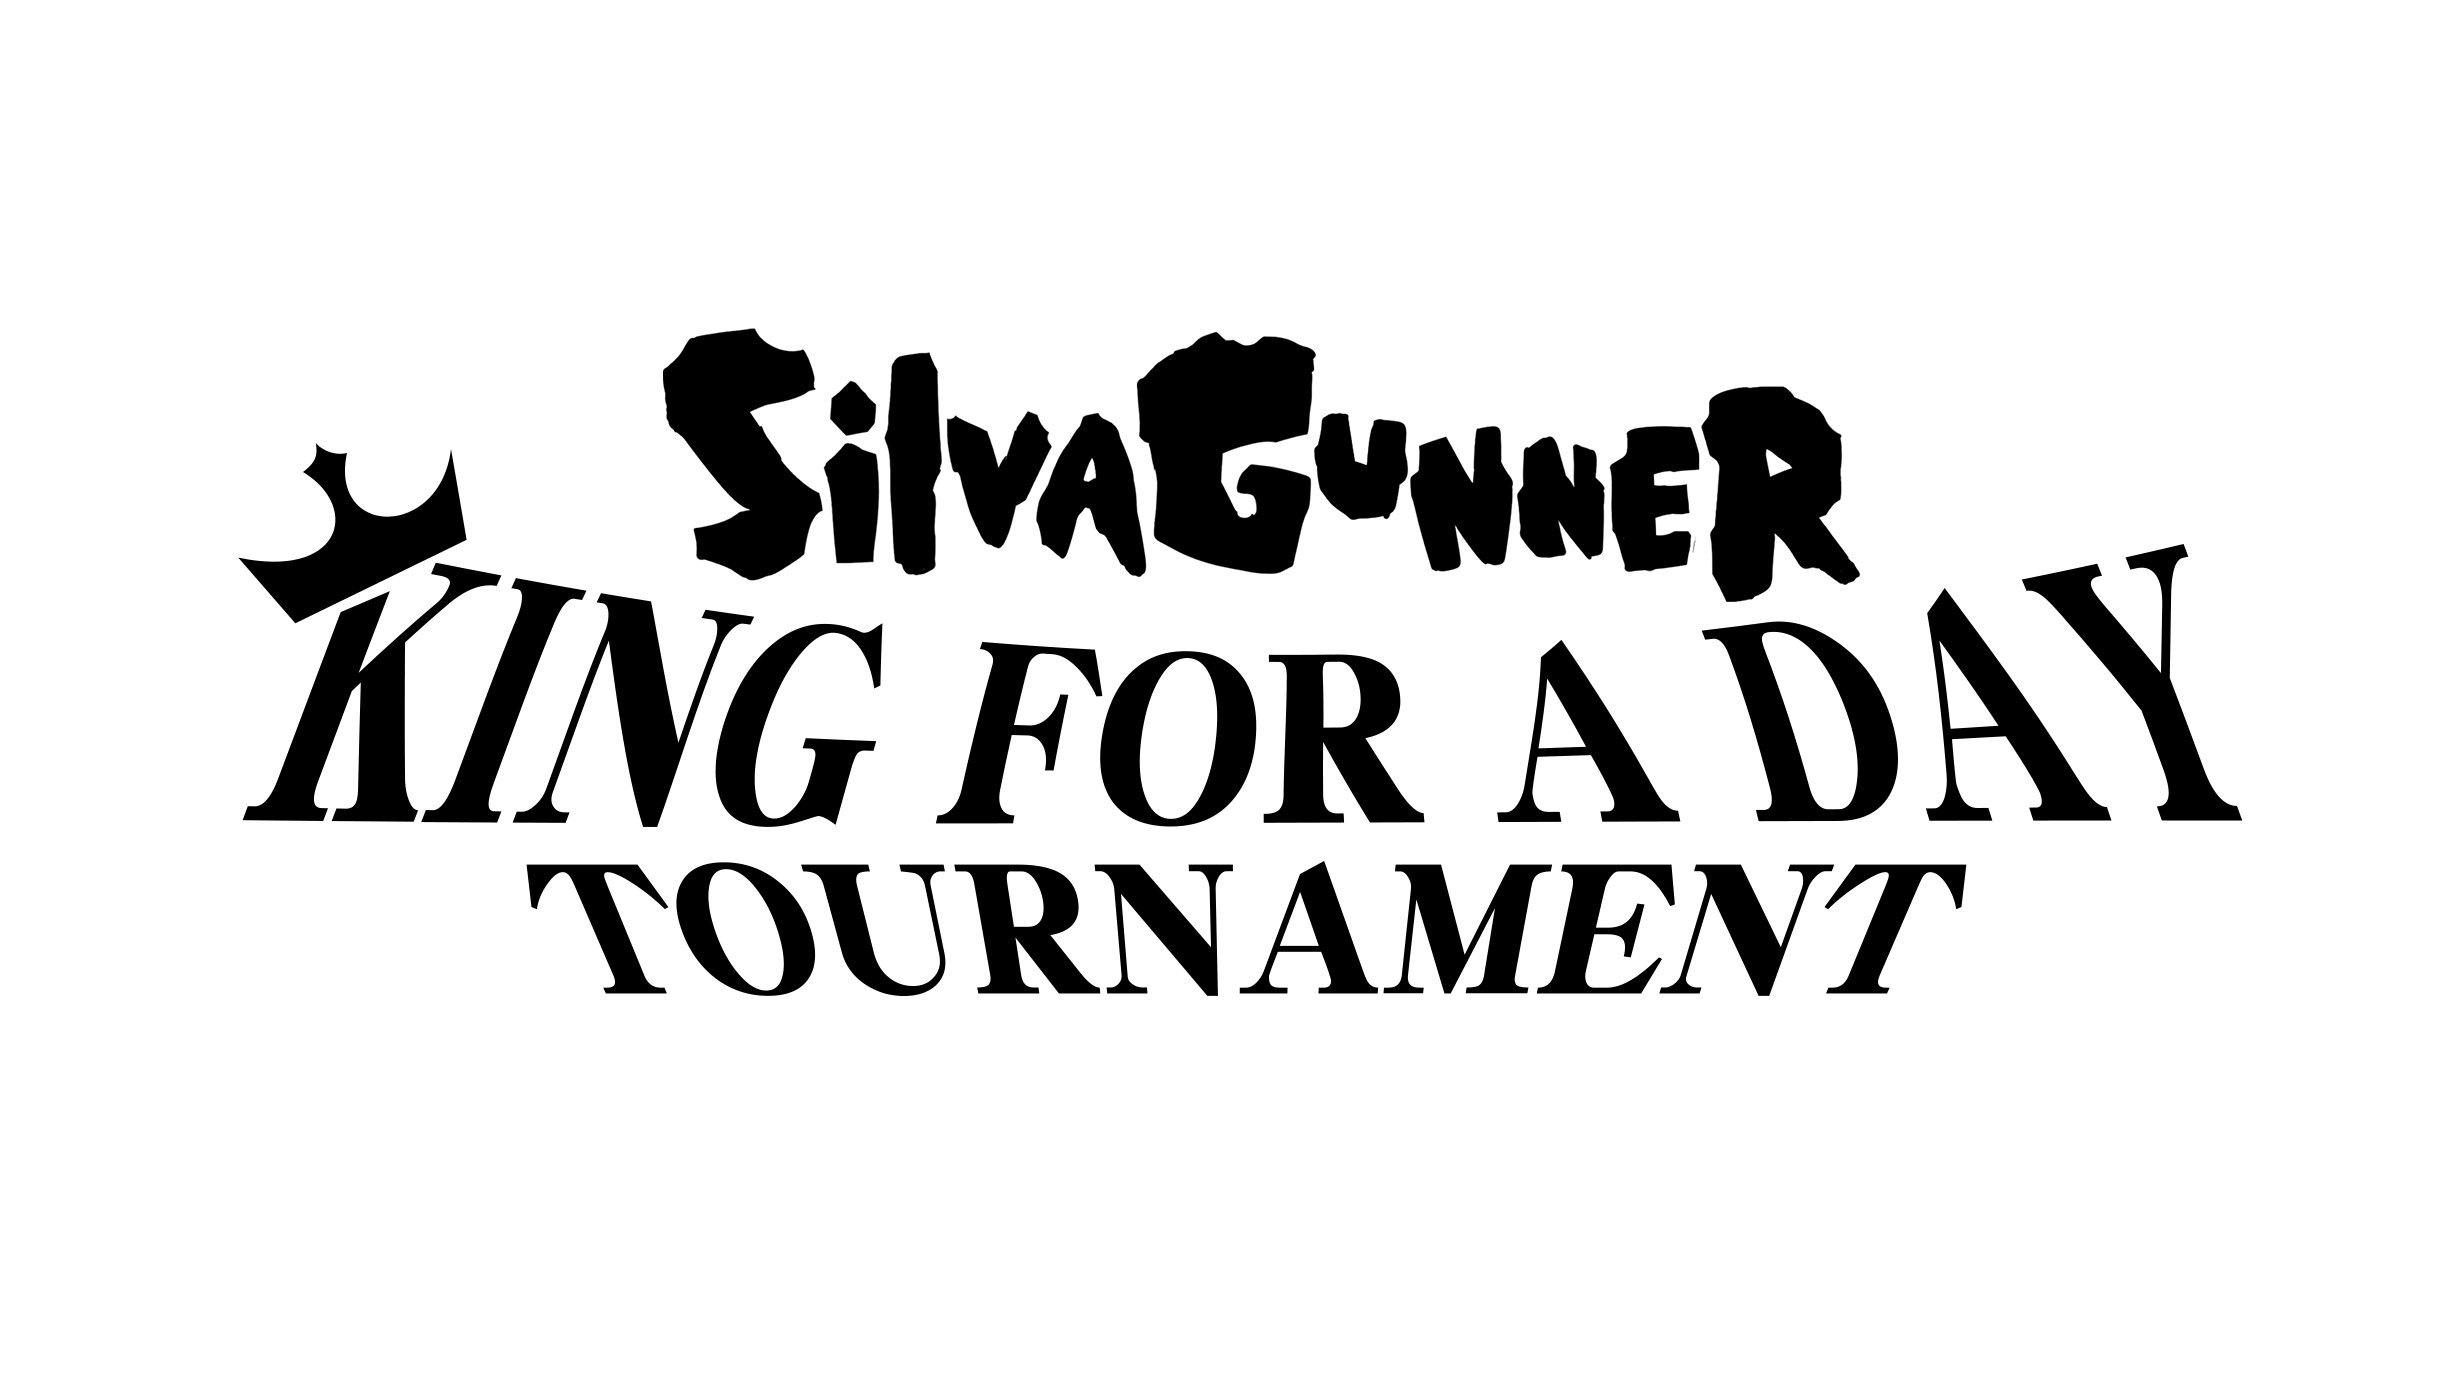 King for a Day Tournament Break